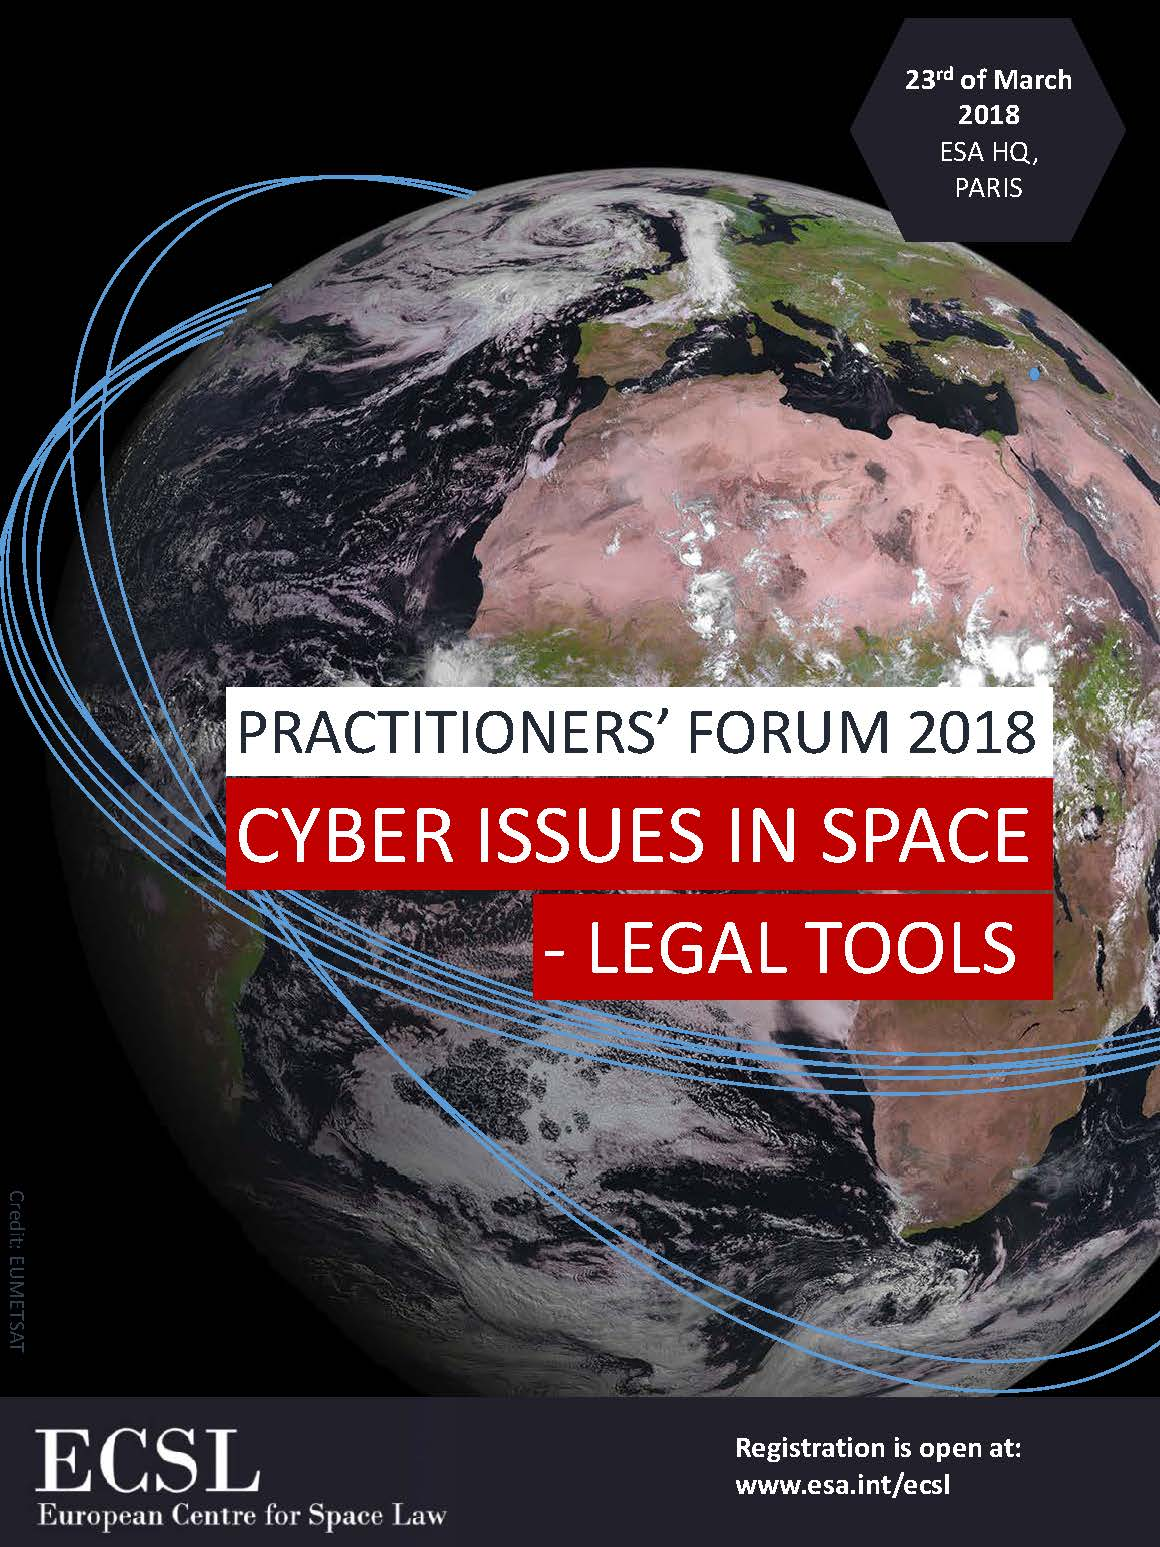 Practitioners Forum 2018 - registration open